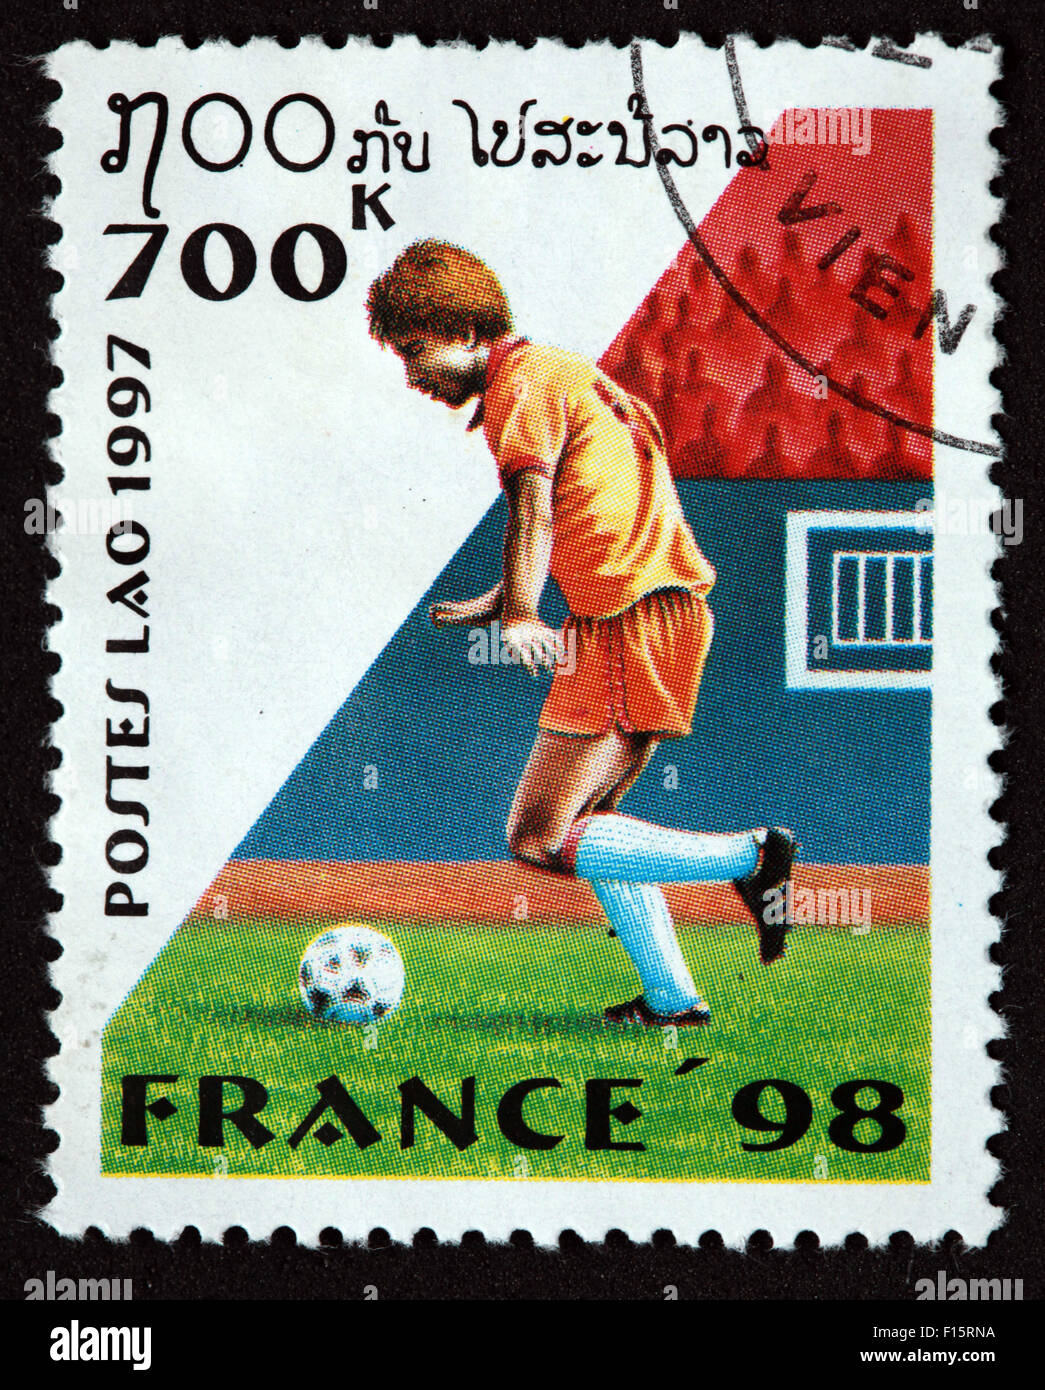 International Post,star,Used and Postmarked,Used,and,postmarked,perforated,stamp,Used,and,postmarked,Stamp,post,posting,mail,hobby,perforation,mark,postage,stamp,print,stamp,cancelled,stamp,payment,correspondence,postman,collection,collector,cup,worldcup,francais,philately,player,team,ball,boot,Gotonysmith,post,posting,mail,hobby,perforation,mark,postage,stamp,print,stamp,cancelled,canceled,stamp,payment,correspondence,postman,collection,collector,philately,philatelist,letter,price,history,retro,Australian,Vintage,delivery,date,relationship,communication,Oz,Australia,DownUnder,classic rare unique Austrailian financial,investment,invest,value,British,empire,nation,canceled,printed on black background,close-up,closeup,close,up,sent,send,philately,mailing,shipping,postoffice,office,isolated,circa,special,colour,color,postmarked,marked,airmail,aged,antique,retro,cutting,historic,old,stamps,collection,stamp collection,album,Timbre,Sello,Stempel,Selo,Buy Pictures of,Buy Images Of,Down Under,Black background